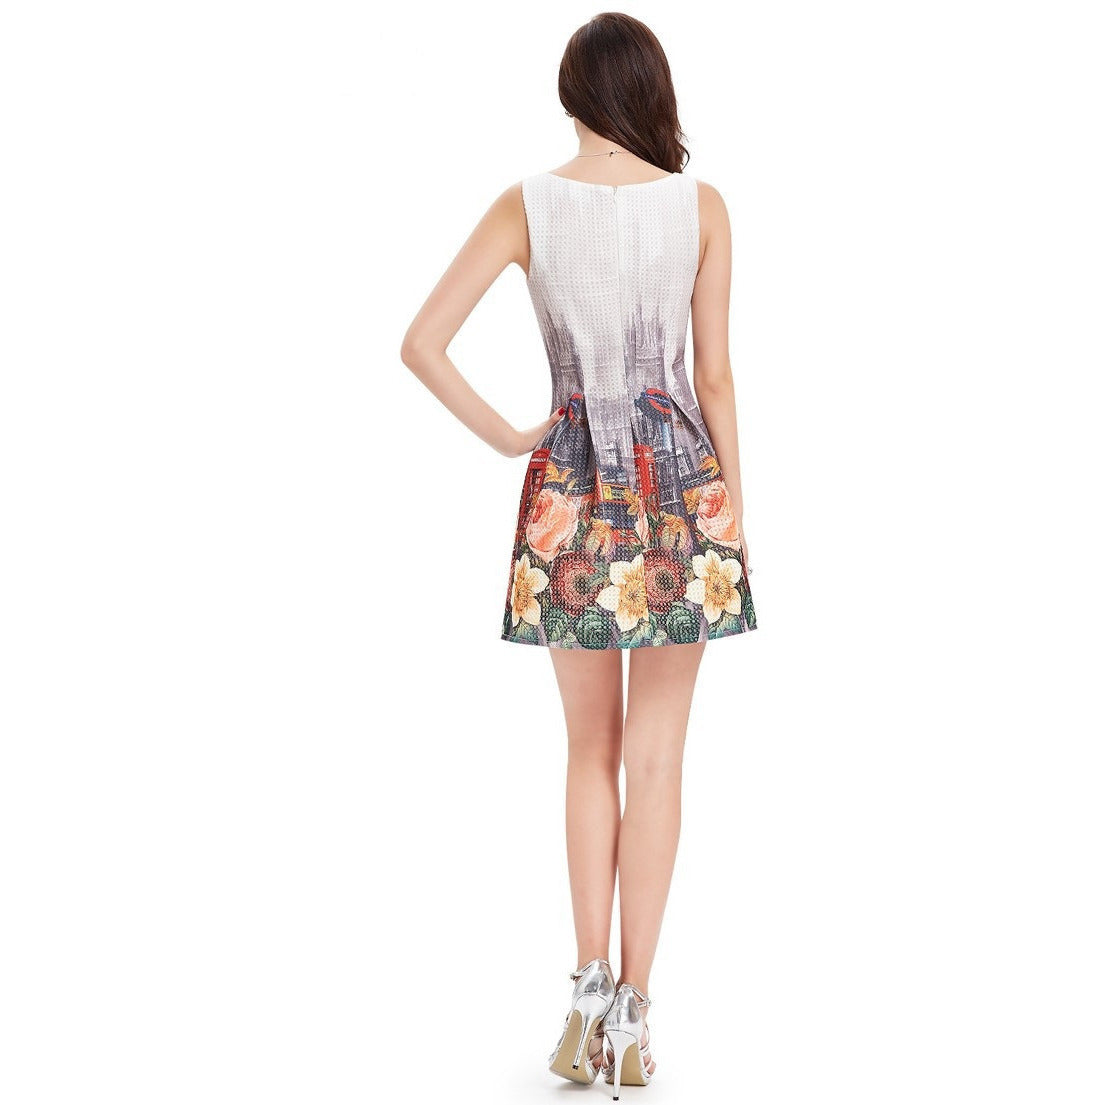 Women's Summer Style Round Neck Cocktail Dress - Indifashion.org